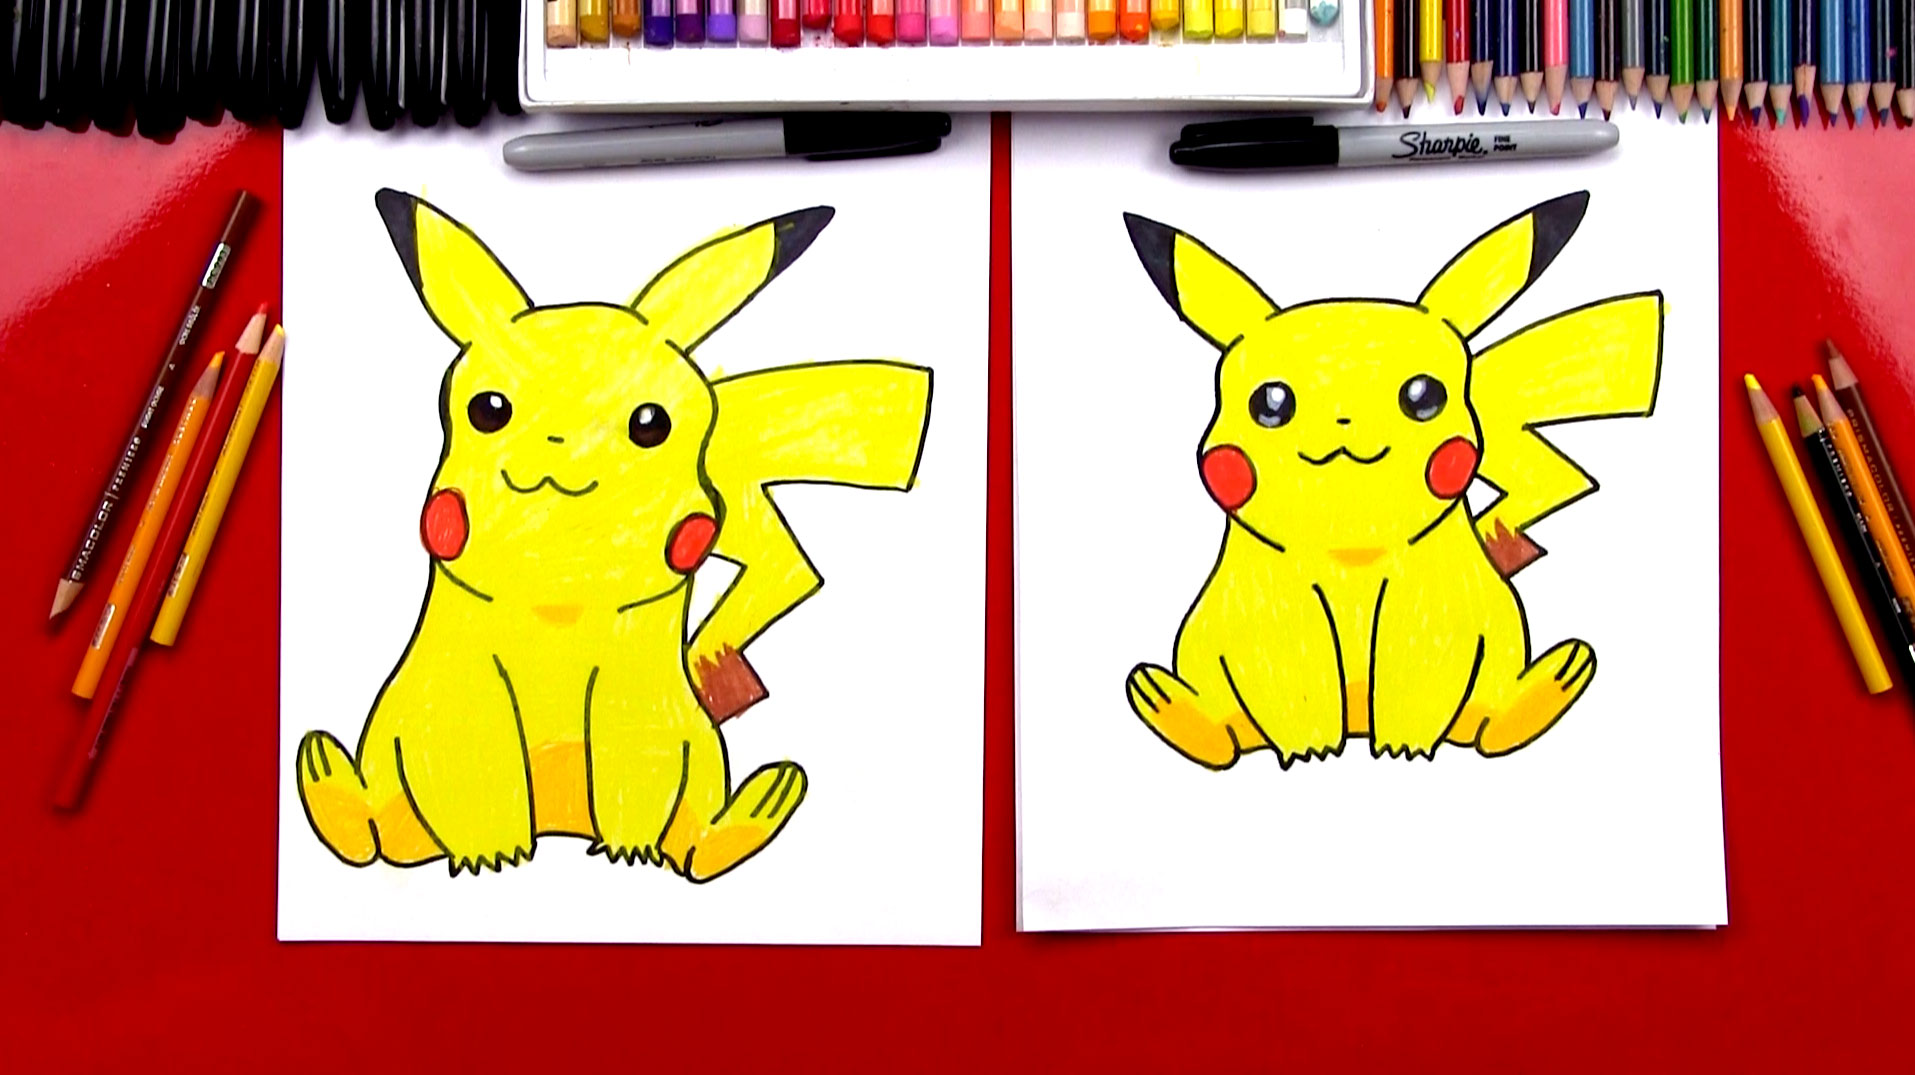 How To Draw Pikachu - Art For Kids Hub